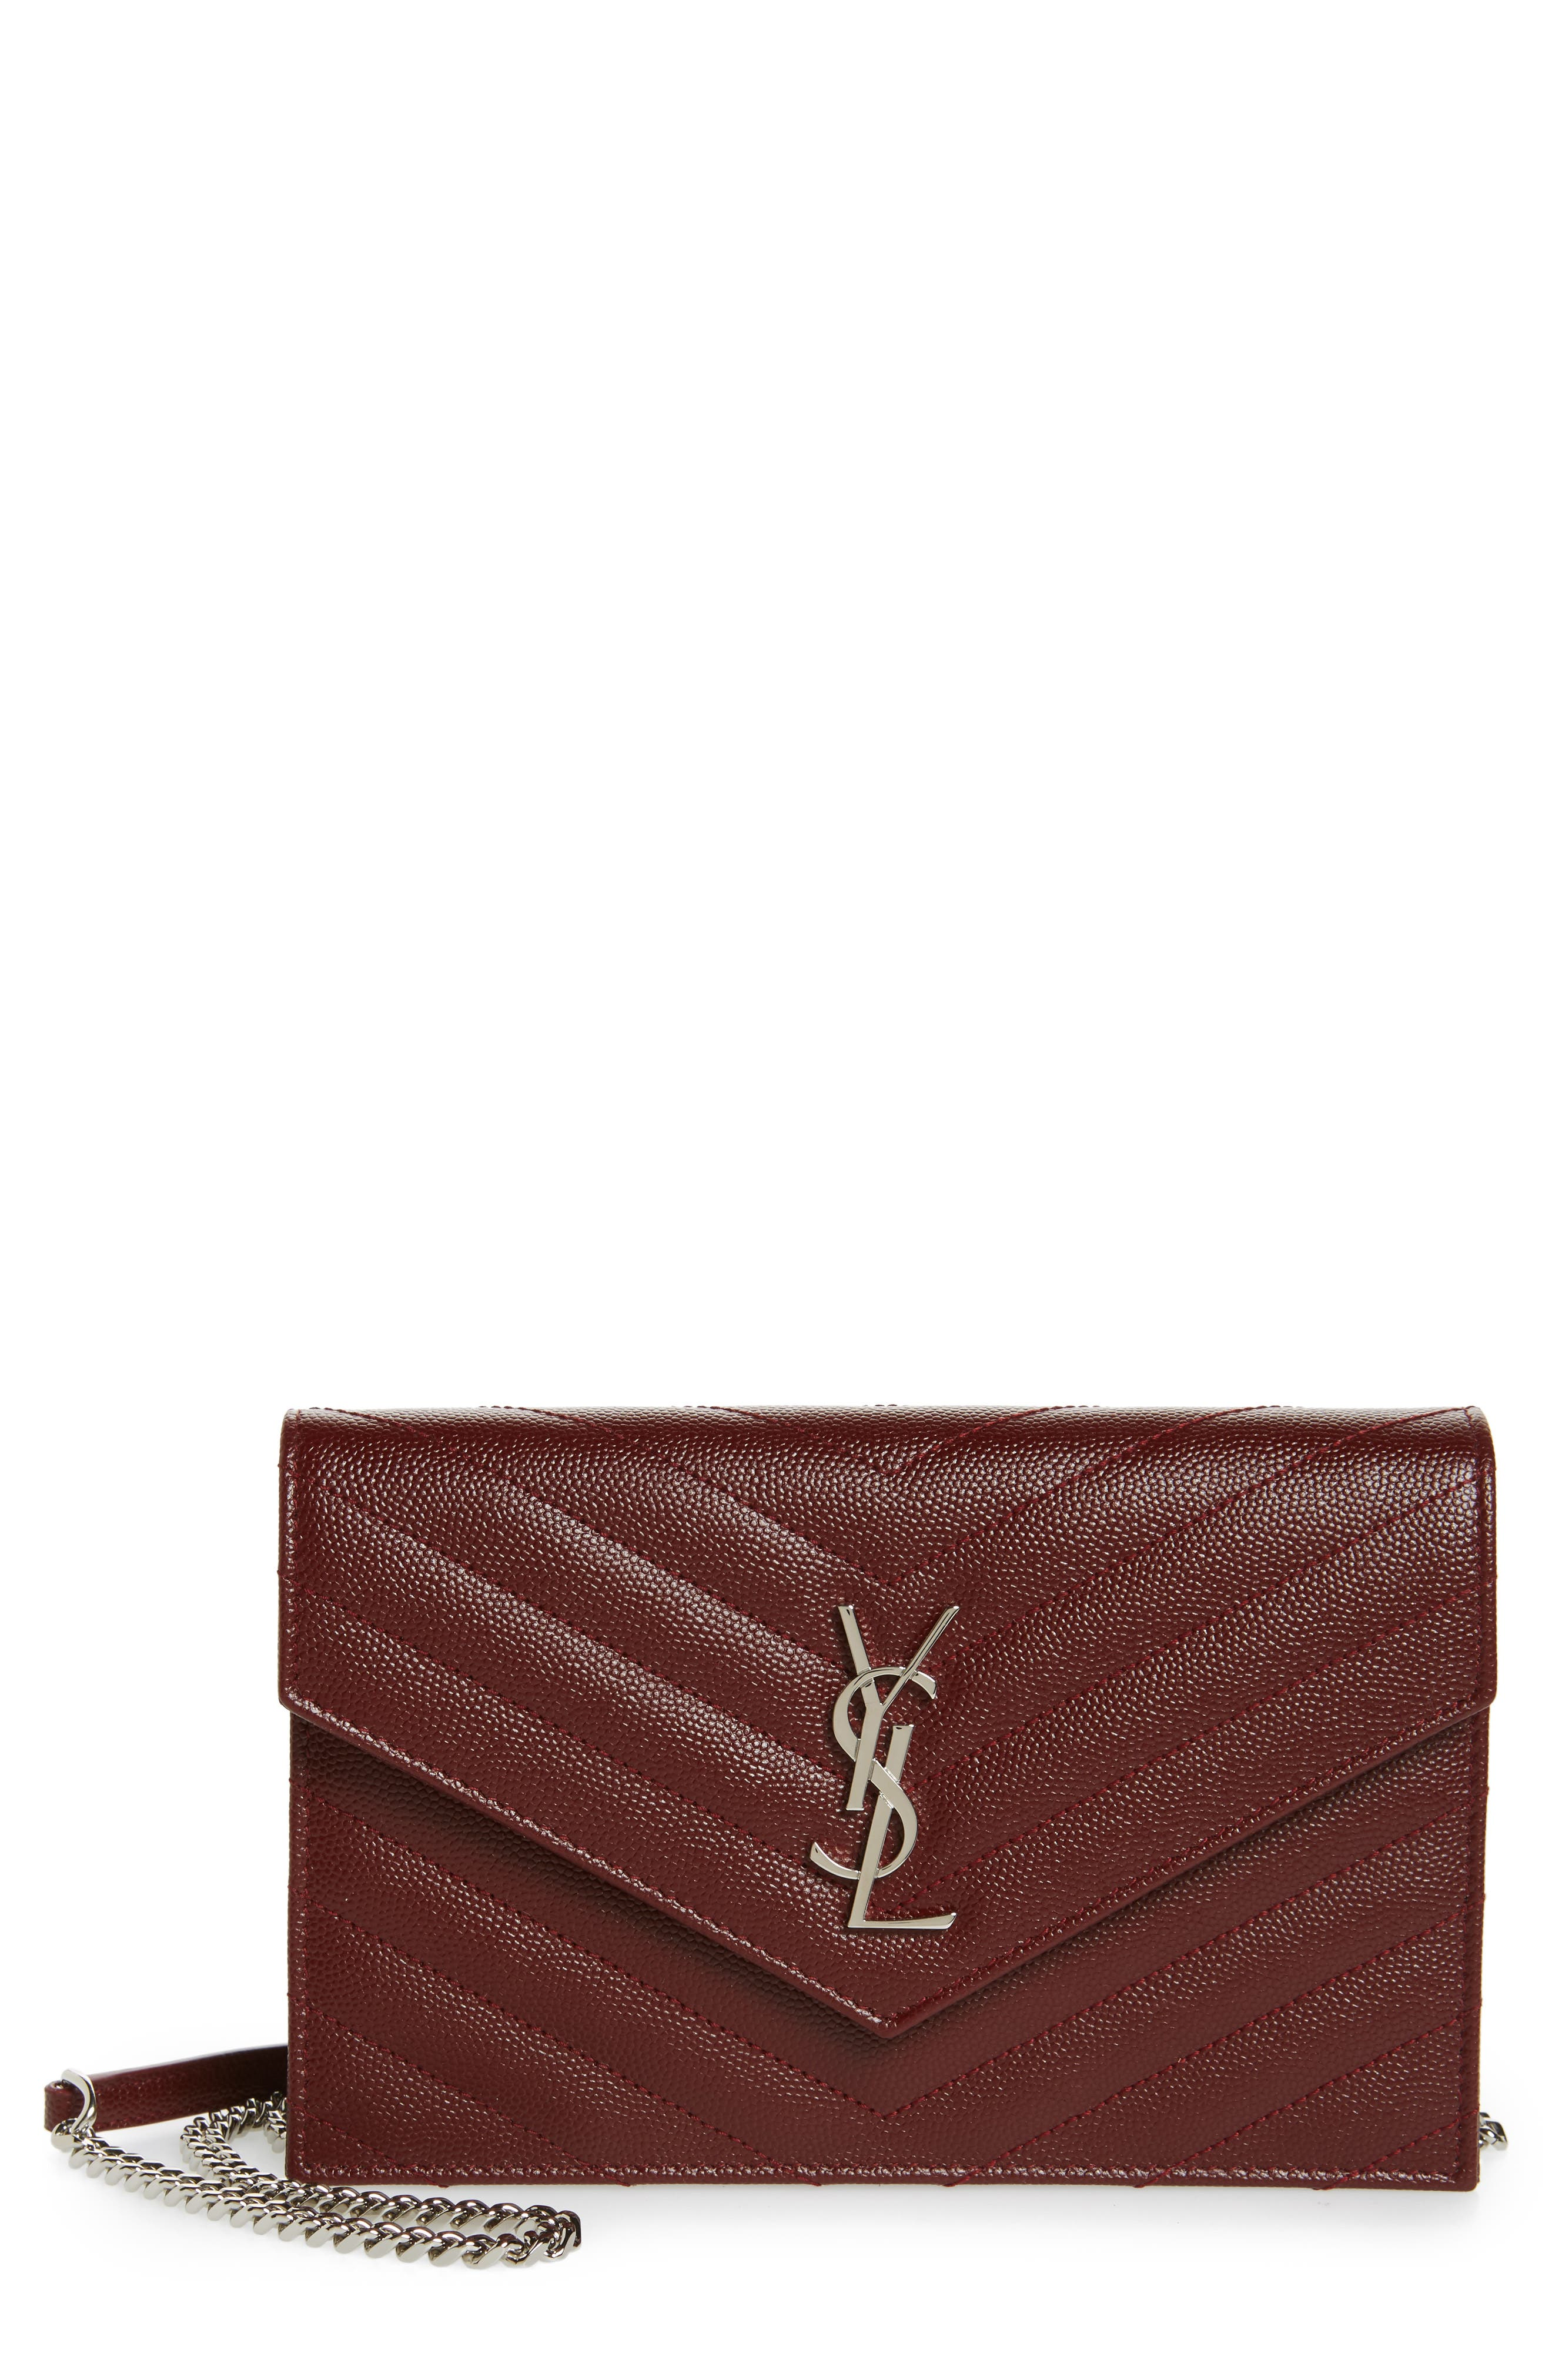 Main Image - Saint Laurent Quilted Calfskin Leather Wallet on a Chain